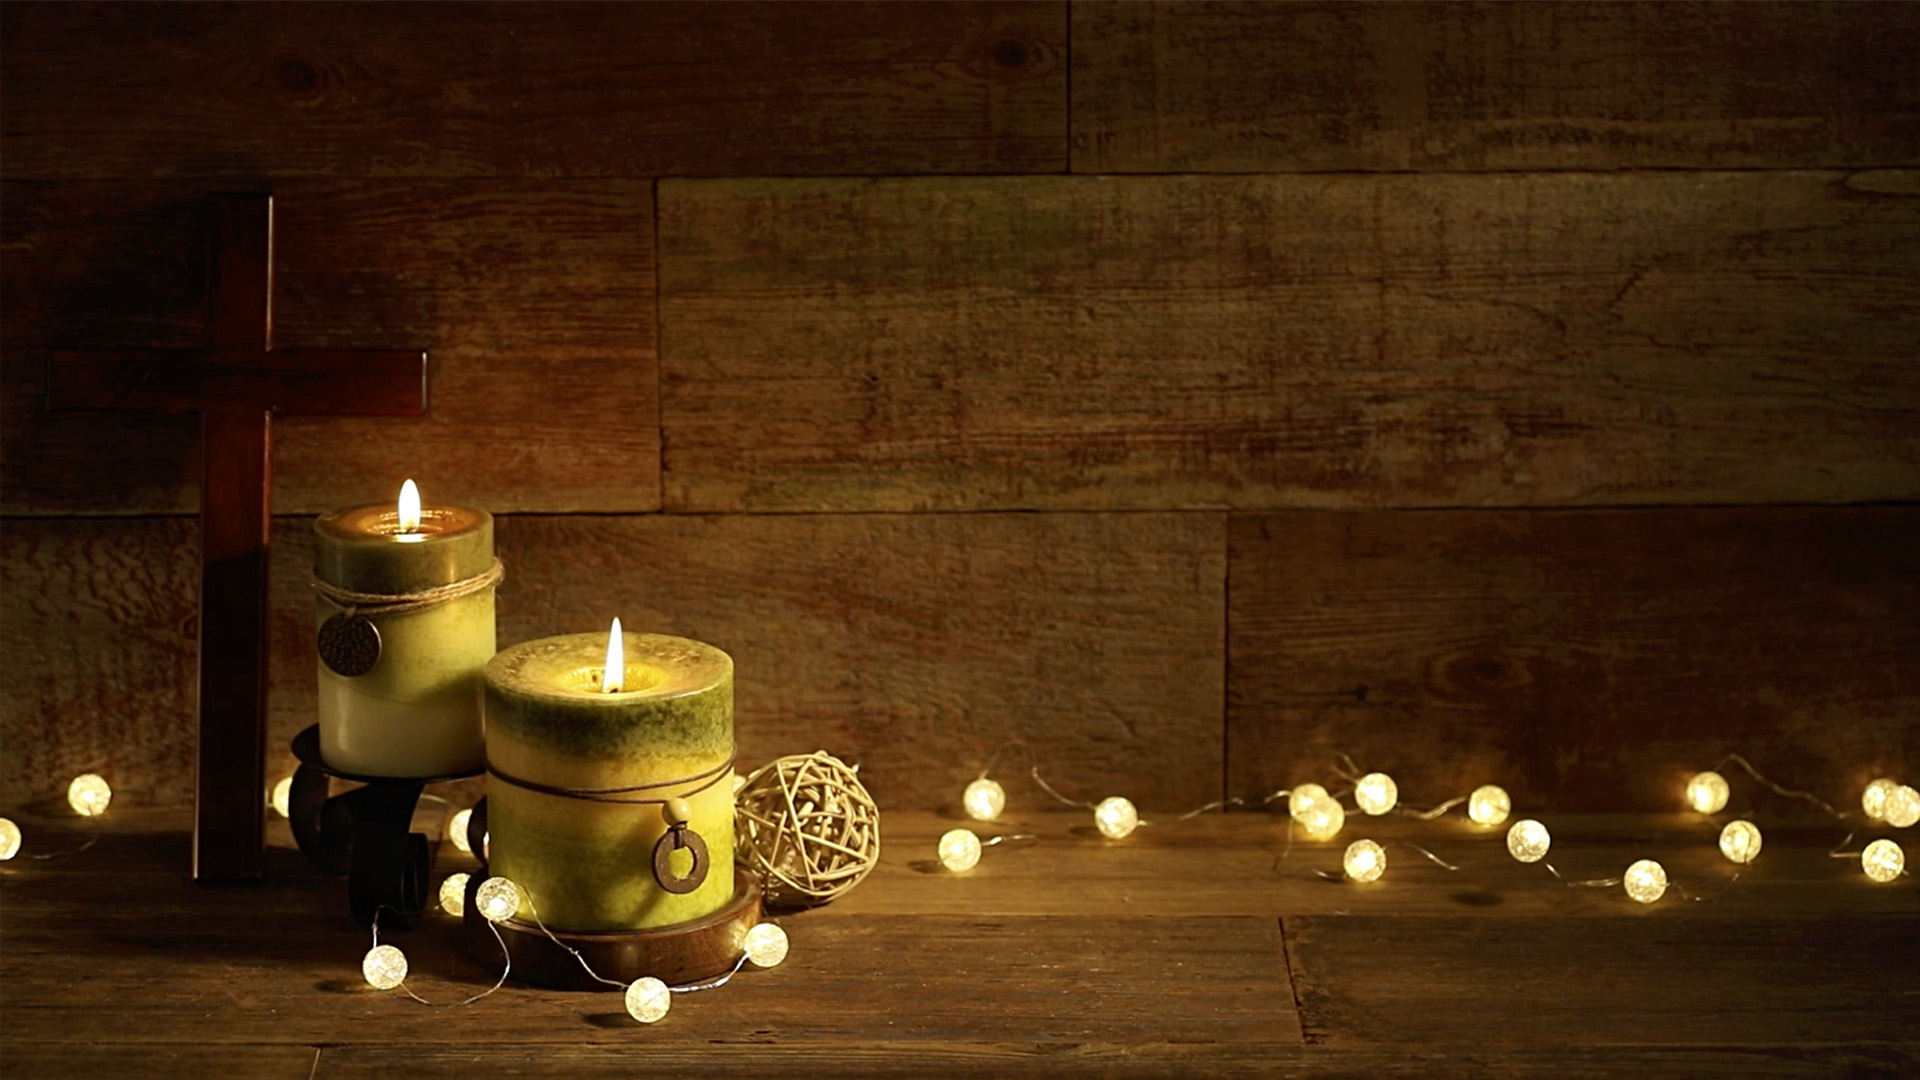 1920x1080 Fall Urban Wallpaper Candles And Cross With Christmas Lights On Wood Background